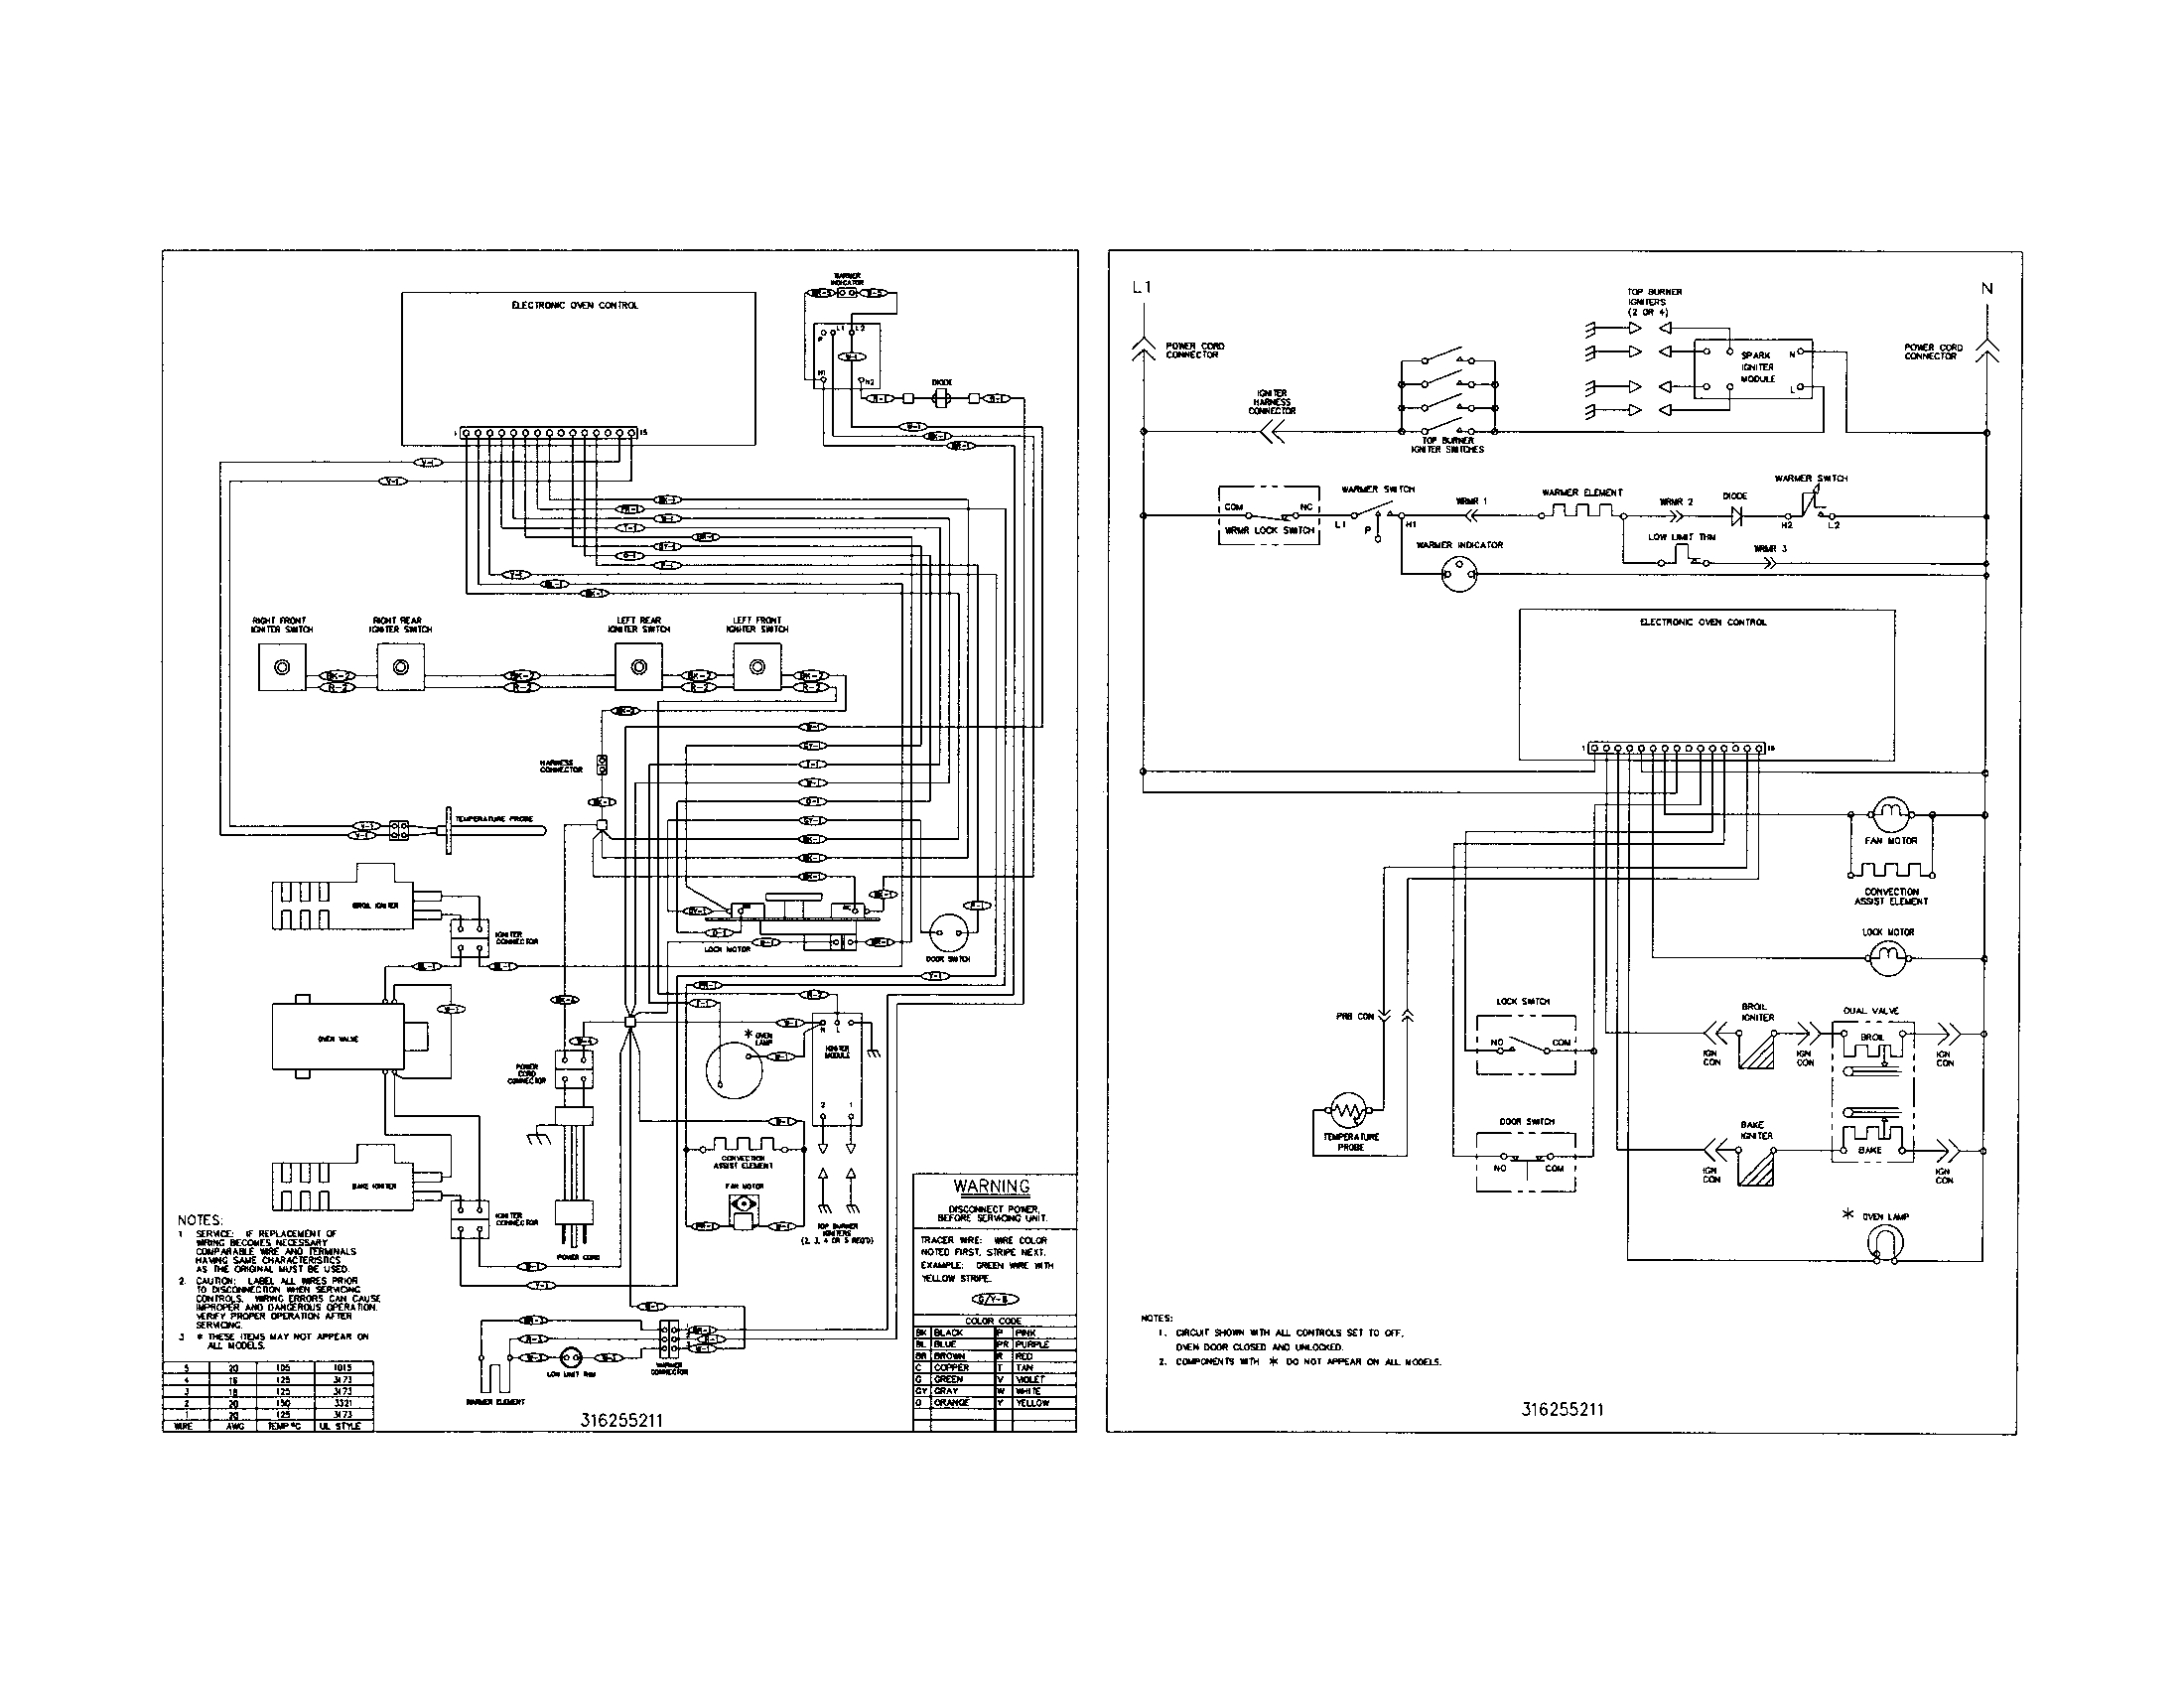 frigidaire dryer wiring diagram Download-Frigidaire Dryer Wiring Diagram Luxury Amazing Free Sample Ideas Frigidaire Dryer Wiring Diagram Ideas 2-e